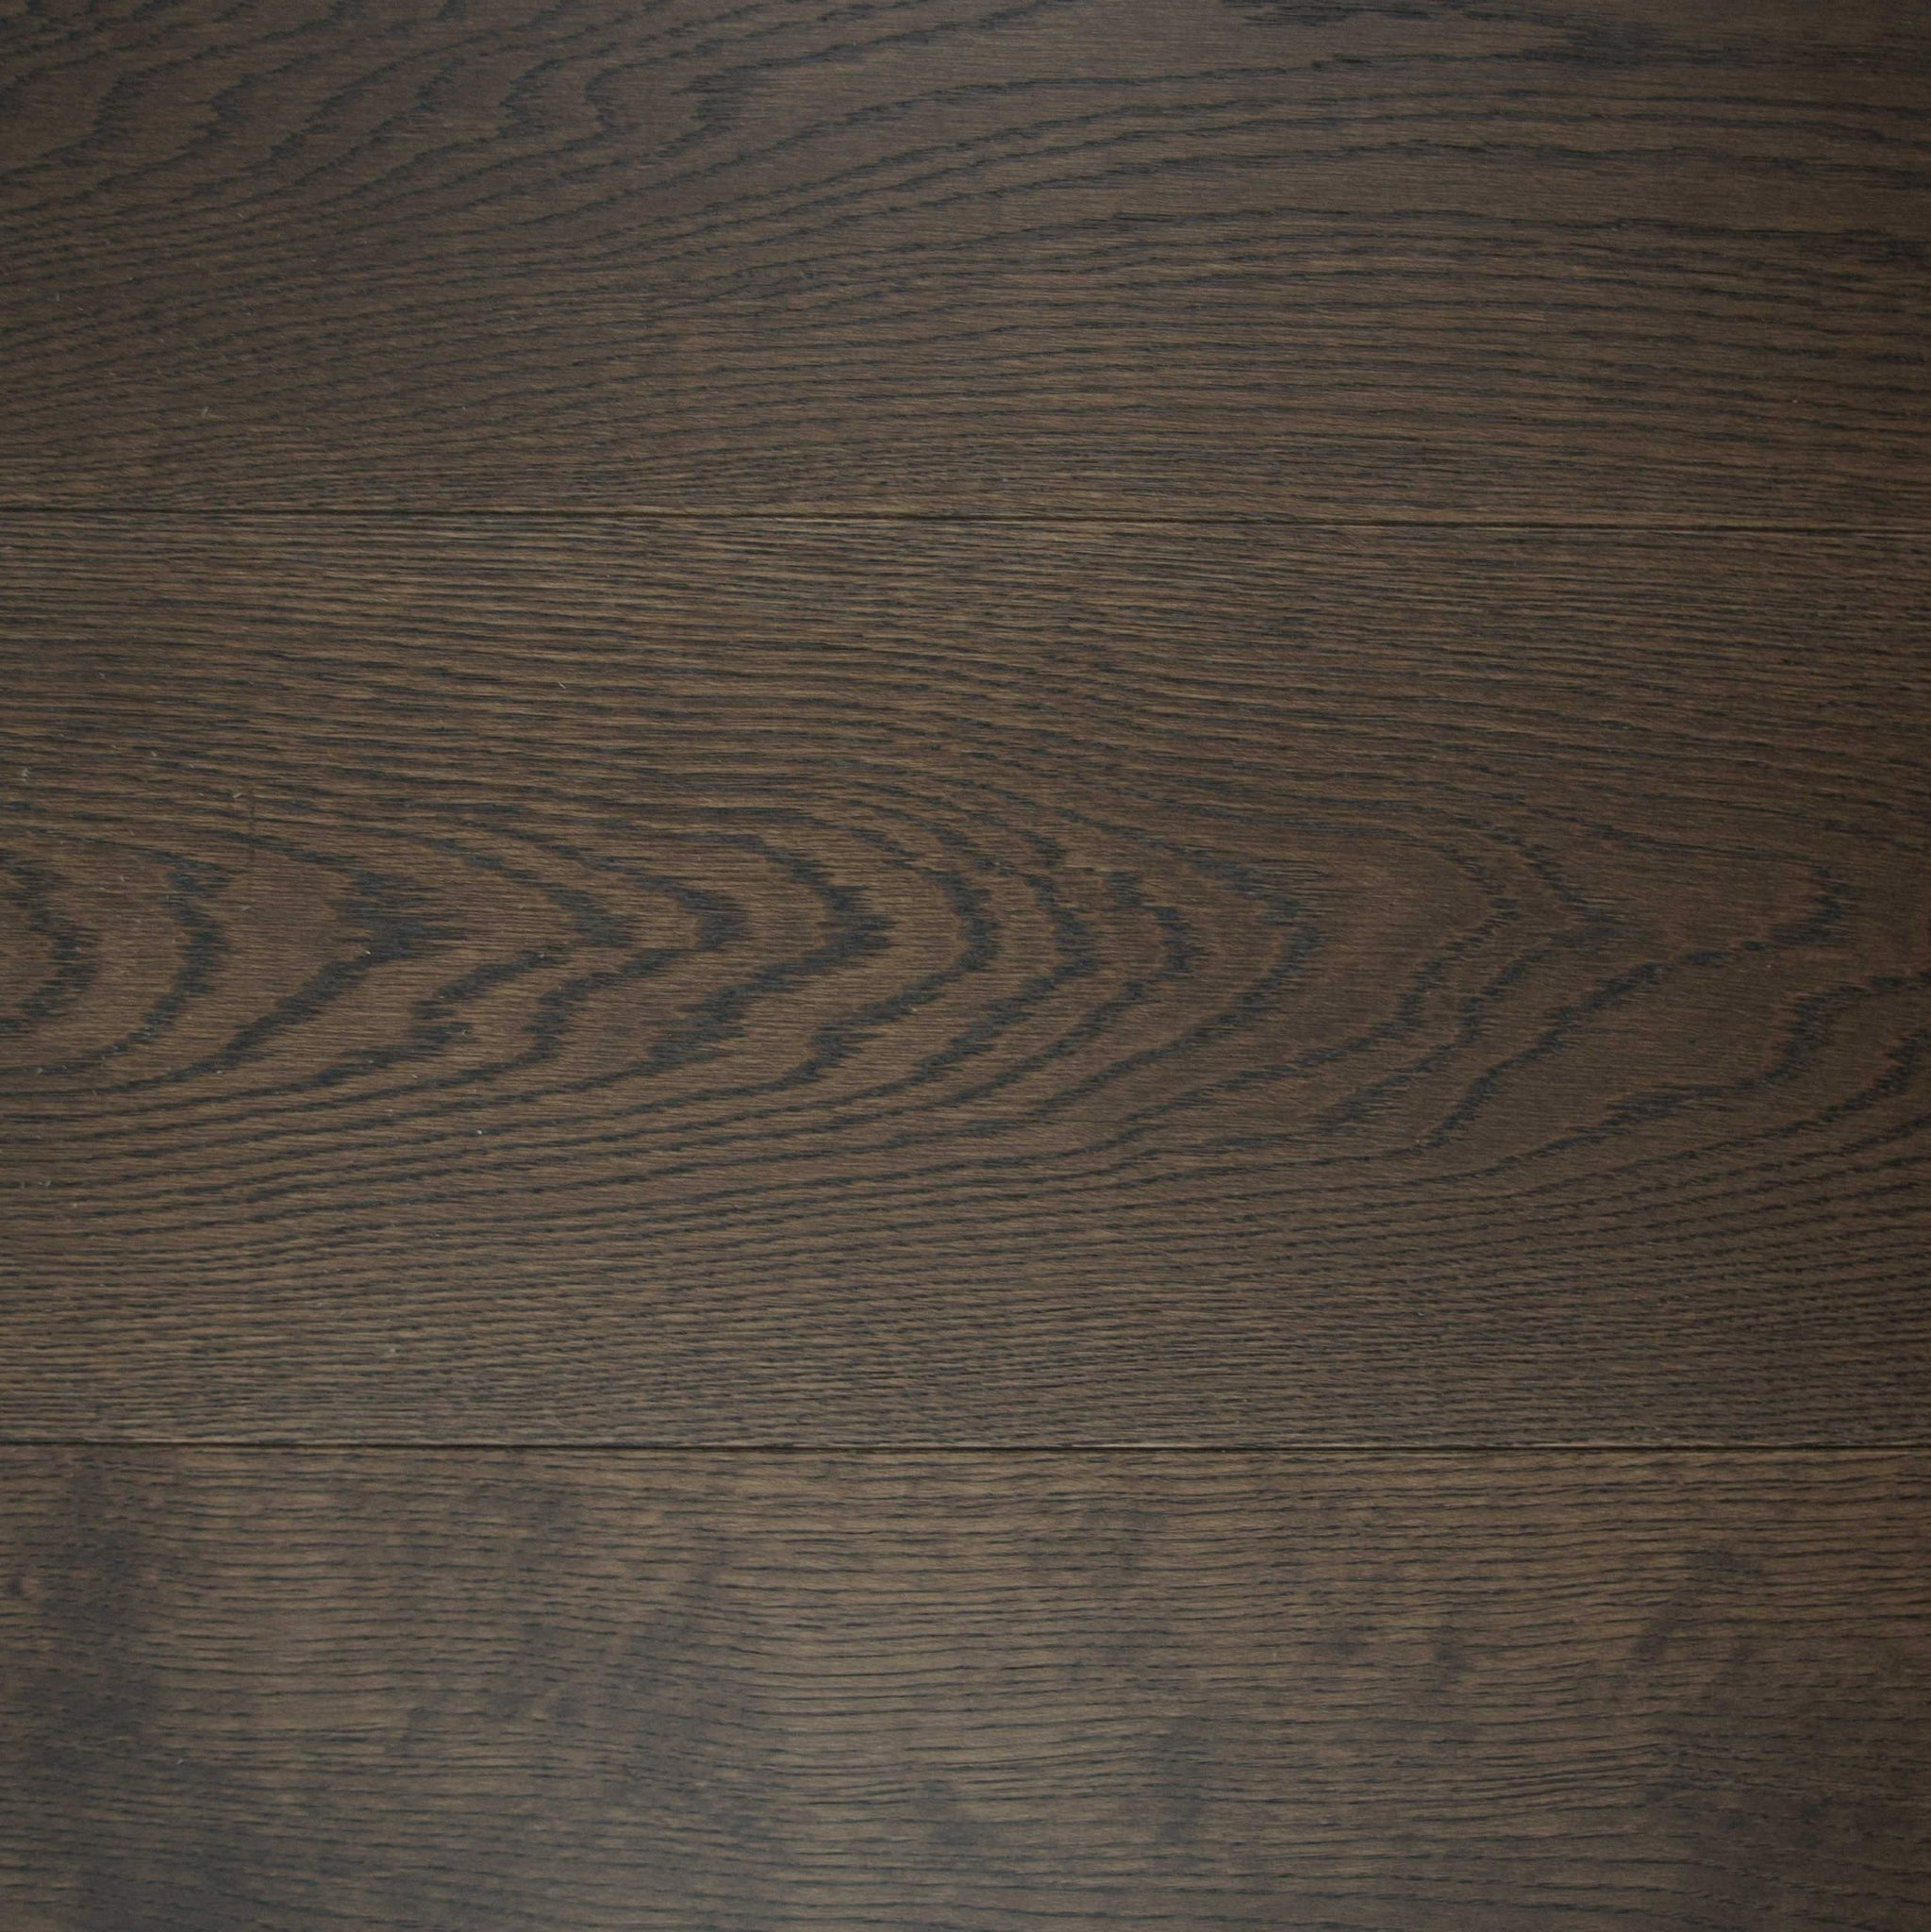 E353ln Brushed Select Grade Dark Brown Oak Lacquered Finish